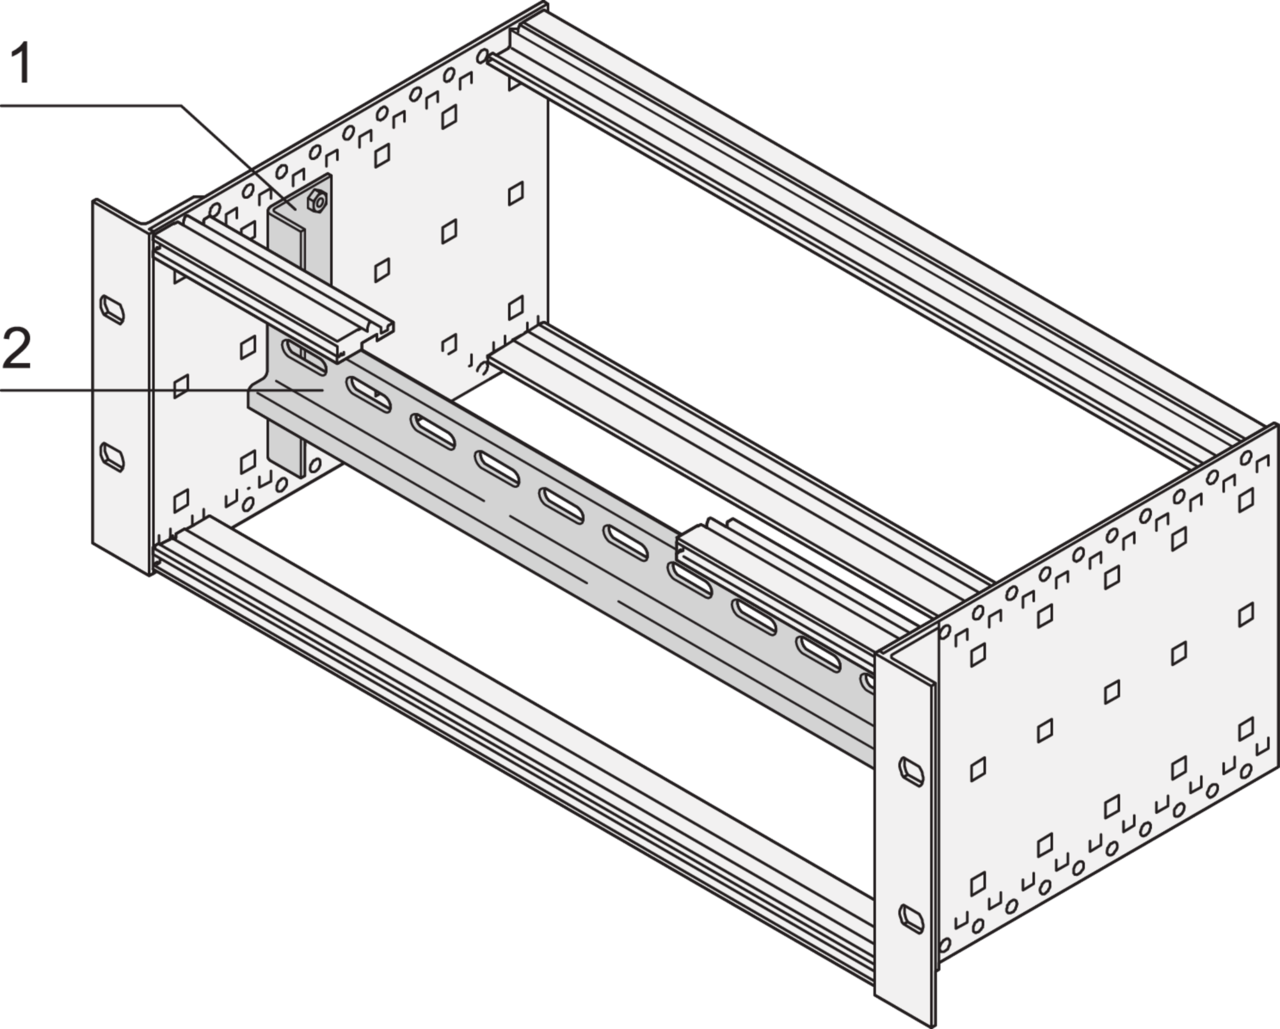 Image for Support rail to DIN 43880 (EuropacPRO) from nVent SCHROFF | Europe, Middle East, Africa and India